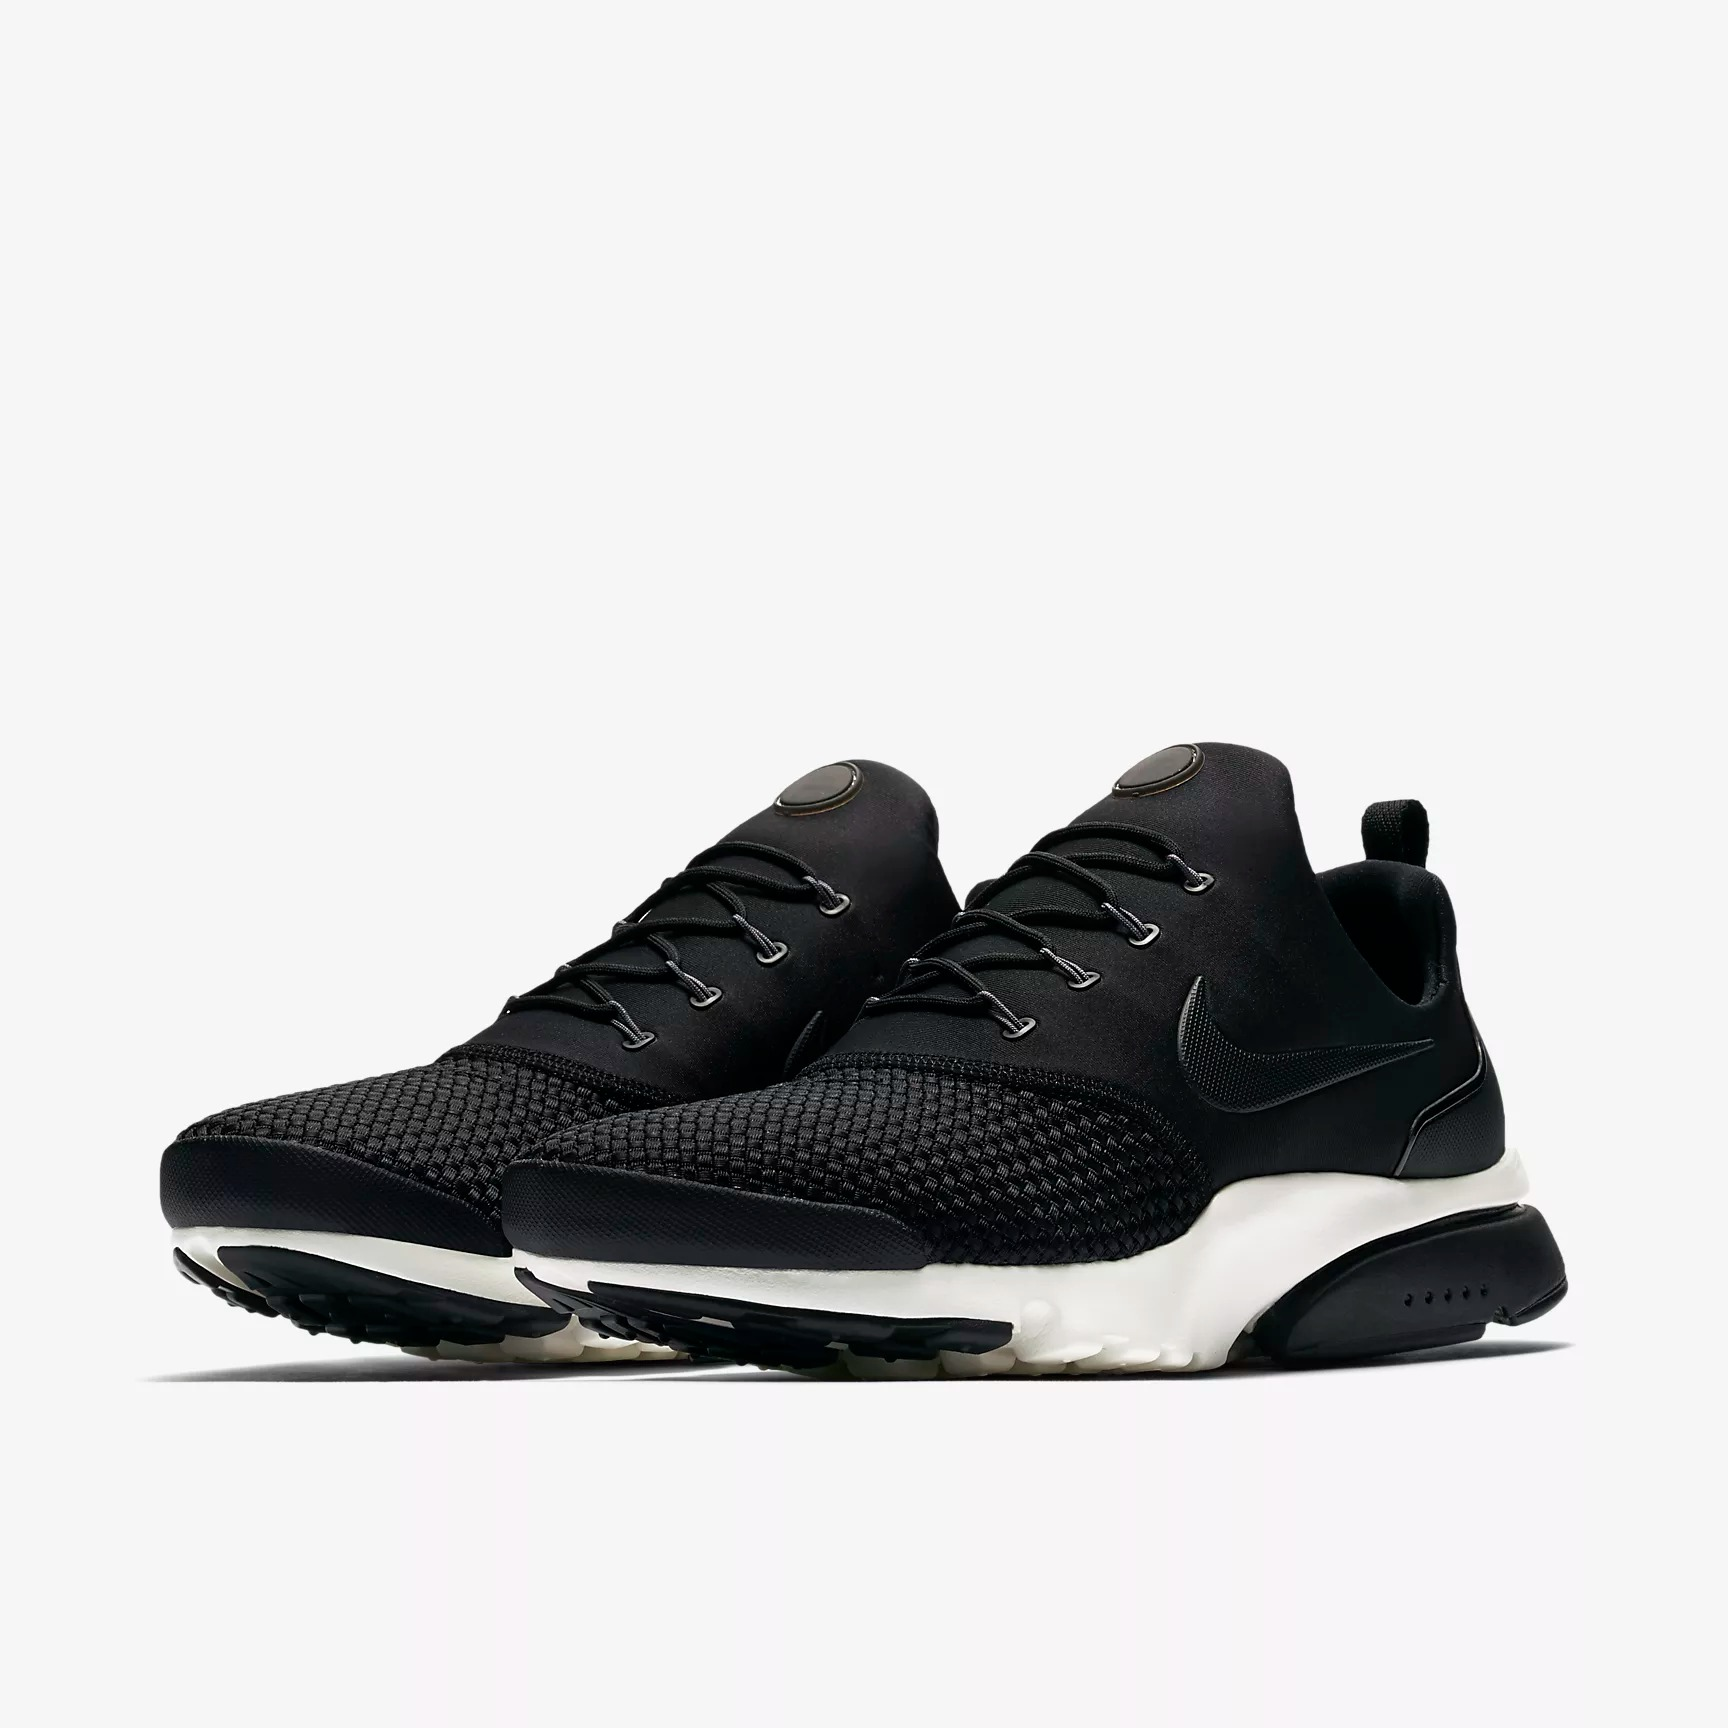 5415adbb95ce Nike Presto Fly SE Sneakers - SPORT SHOES Lifestyle Shoes